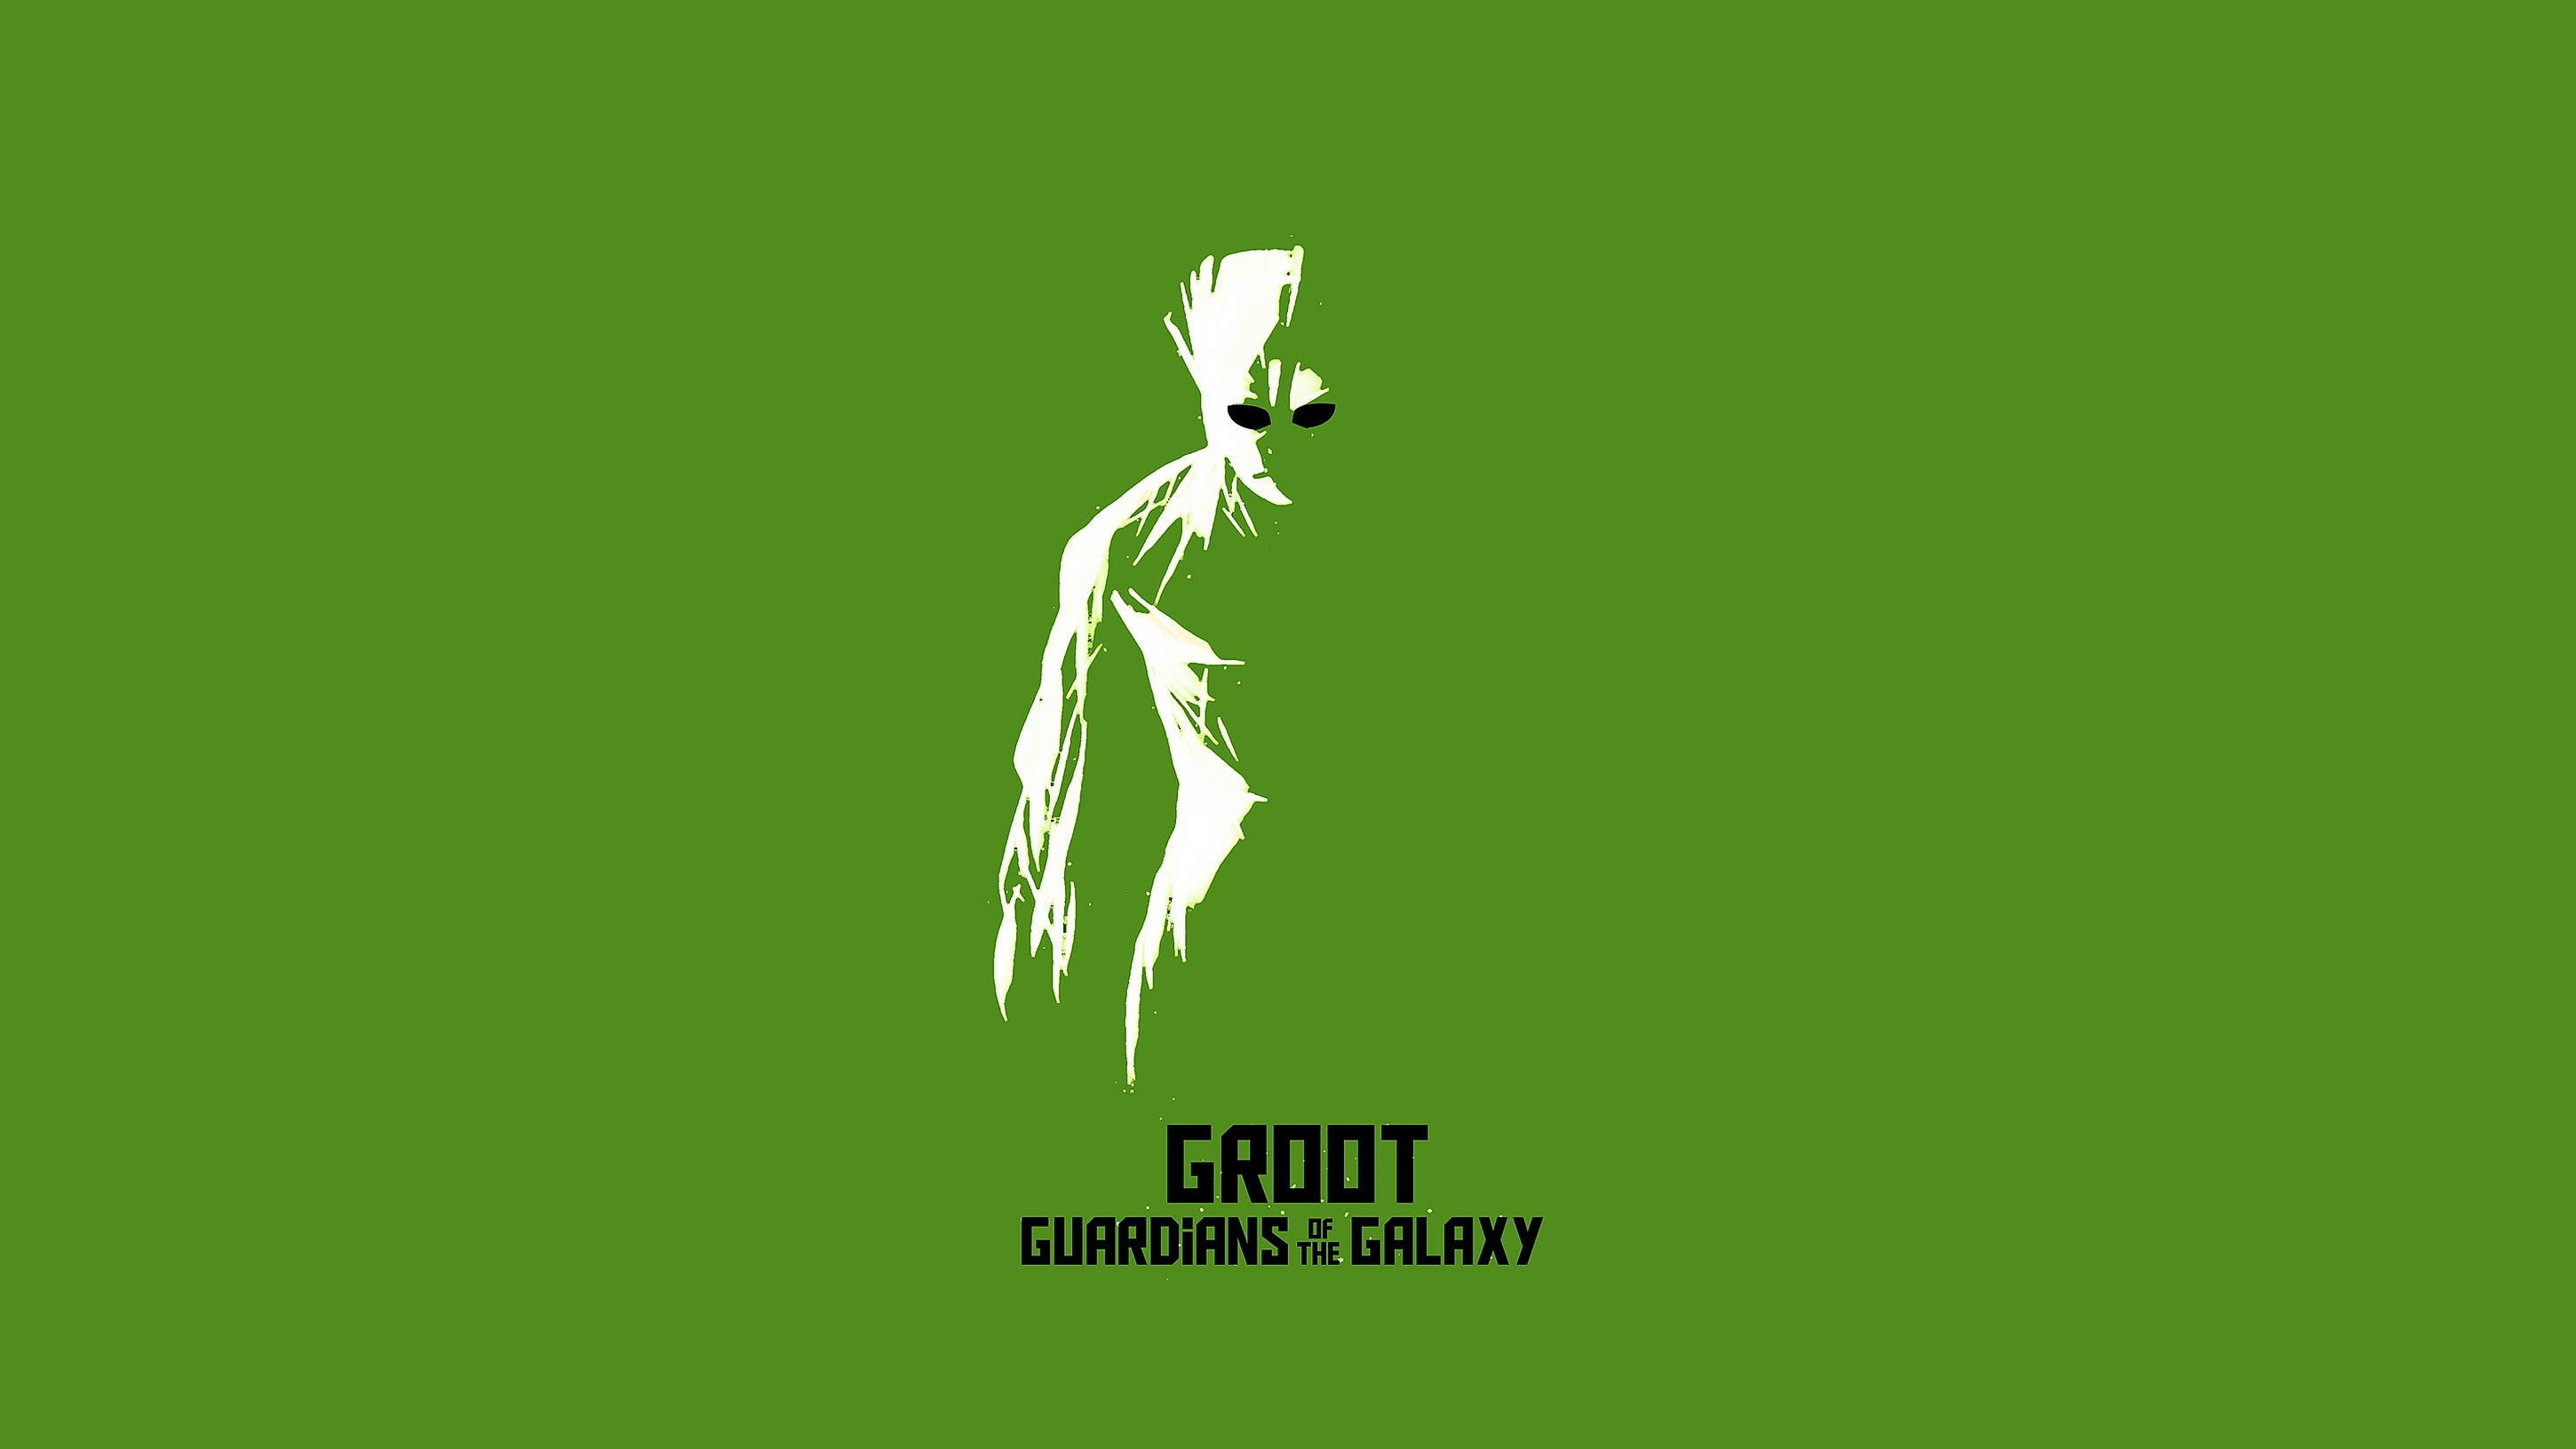 Guardians Of The Galaxy Star Lord Abstract Art 4k Hd: Groot Art, HD Movies, 4k Wallpapers, Images, Backgrounds